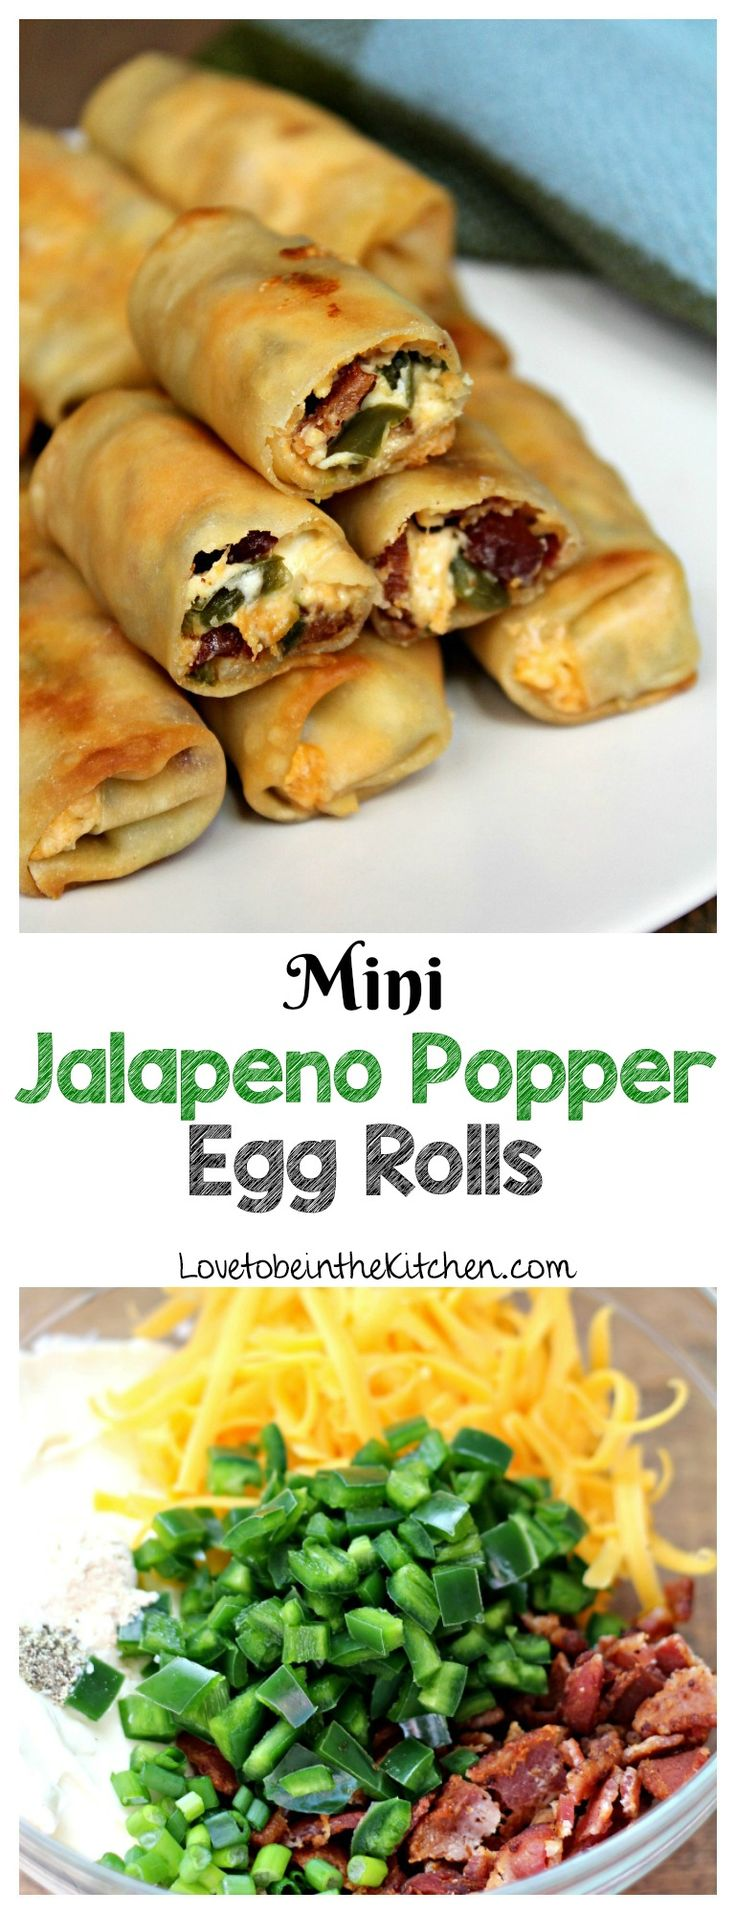 These Mini Jalapeno Popper Egg Rolls are the perfect crowd-pleasing appetizer! Creamy, crunchy, cheesy, spicy, and flavorful!